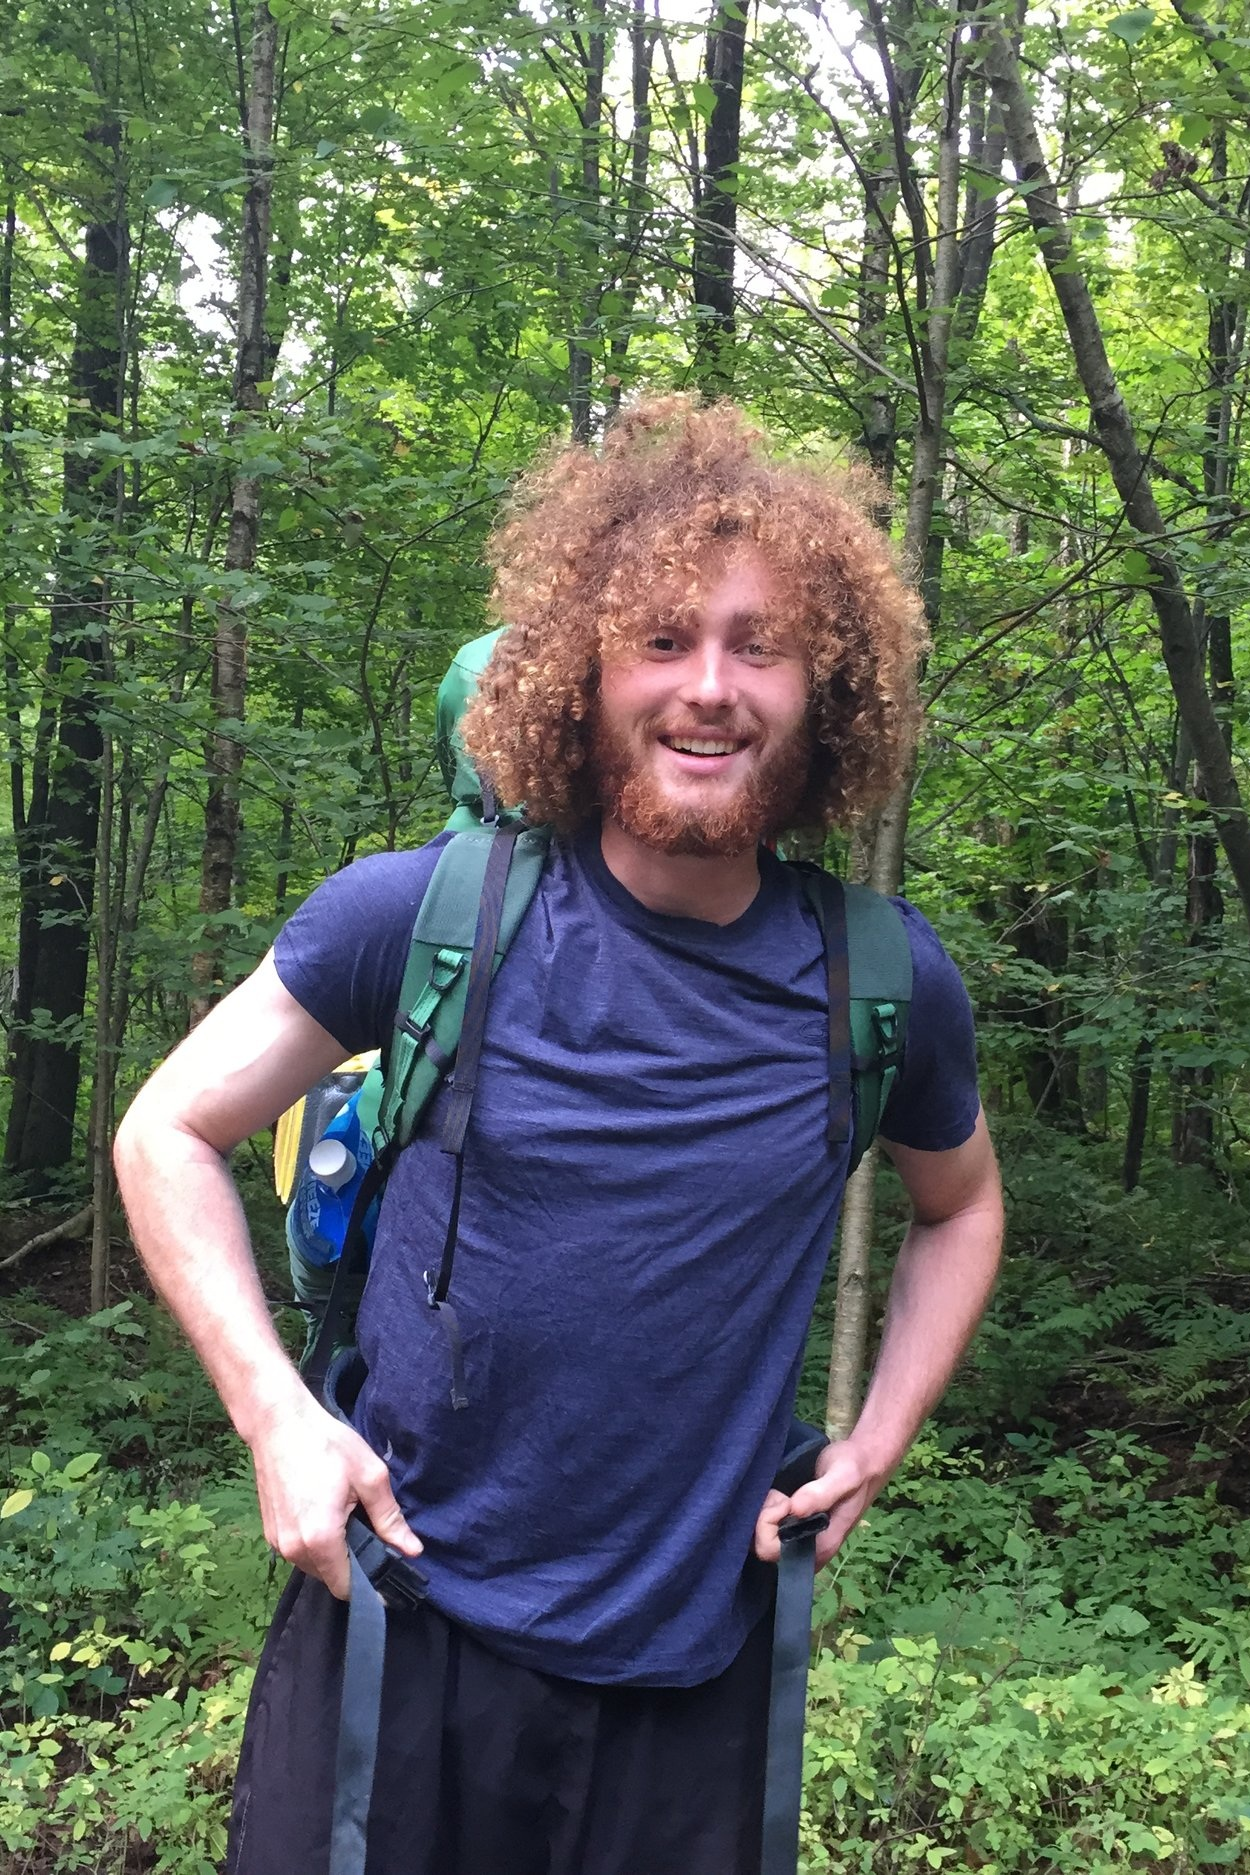 Jacob Combe  Jacob Combe is a Sterling College graduate, Agroecology '17, now applying his agro-ecological landscape assessment skills at Birdhous. He is focusing on site mapping, planning and design. Through careful site analysis he will be influencing how our water & road infrastructure and agroforestry plantings will take shape. More individually, Jacob is developing a platform for artists to monetize and make their illustration and design work available to the wider world.